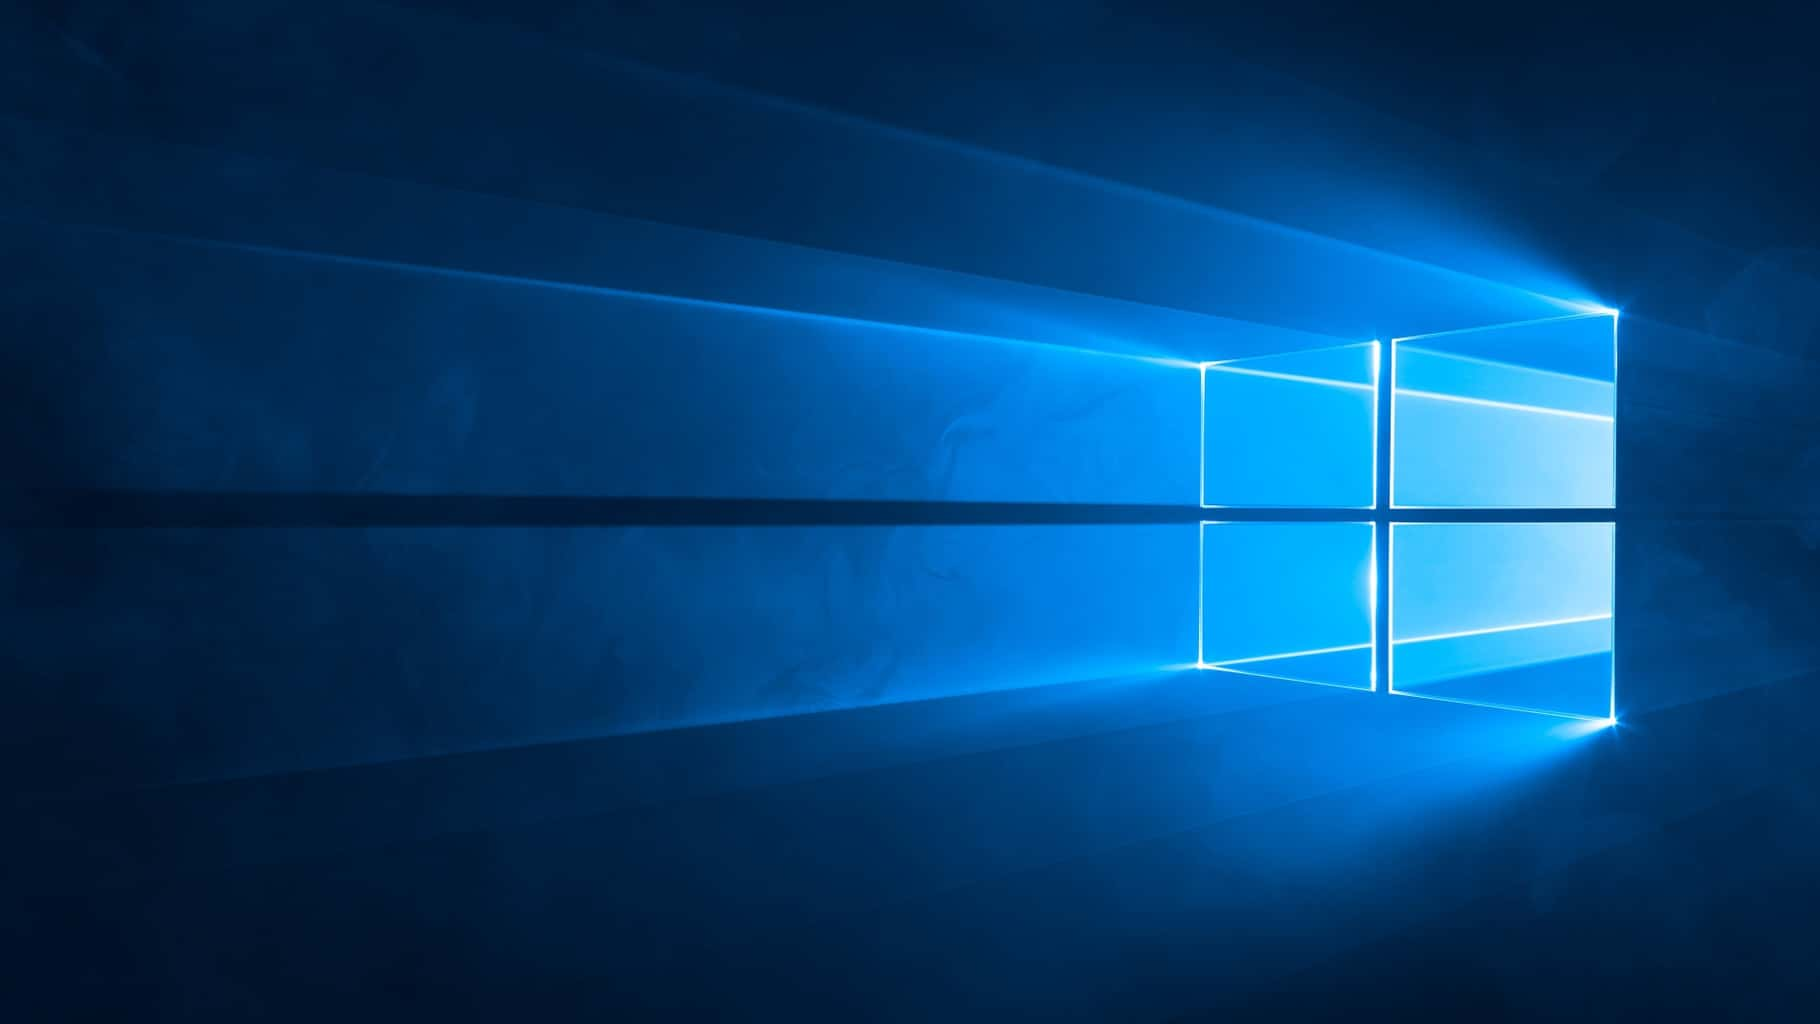 Windows 10 Wallpaper and themes